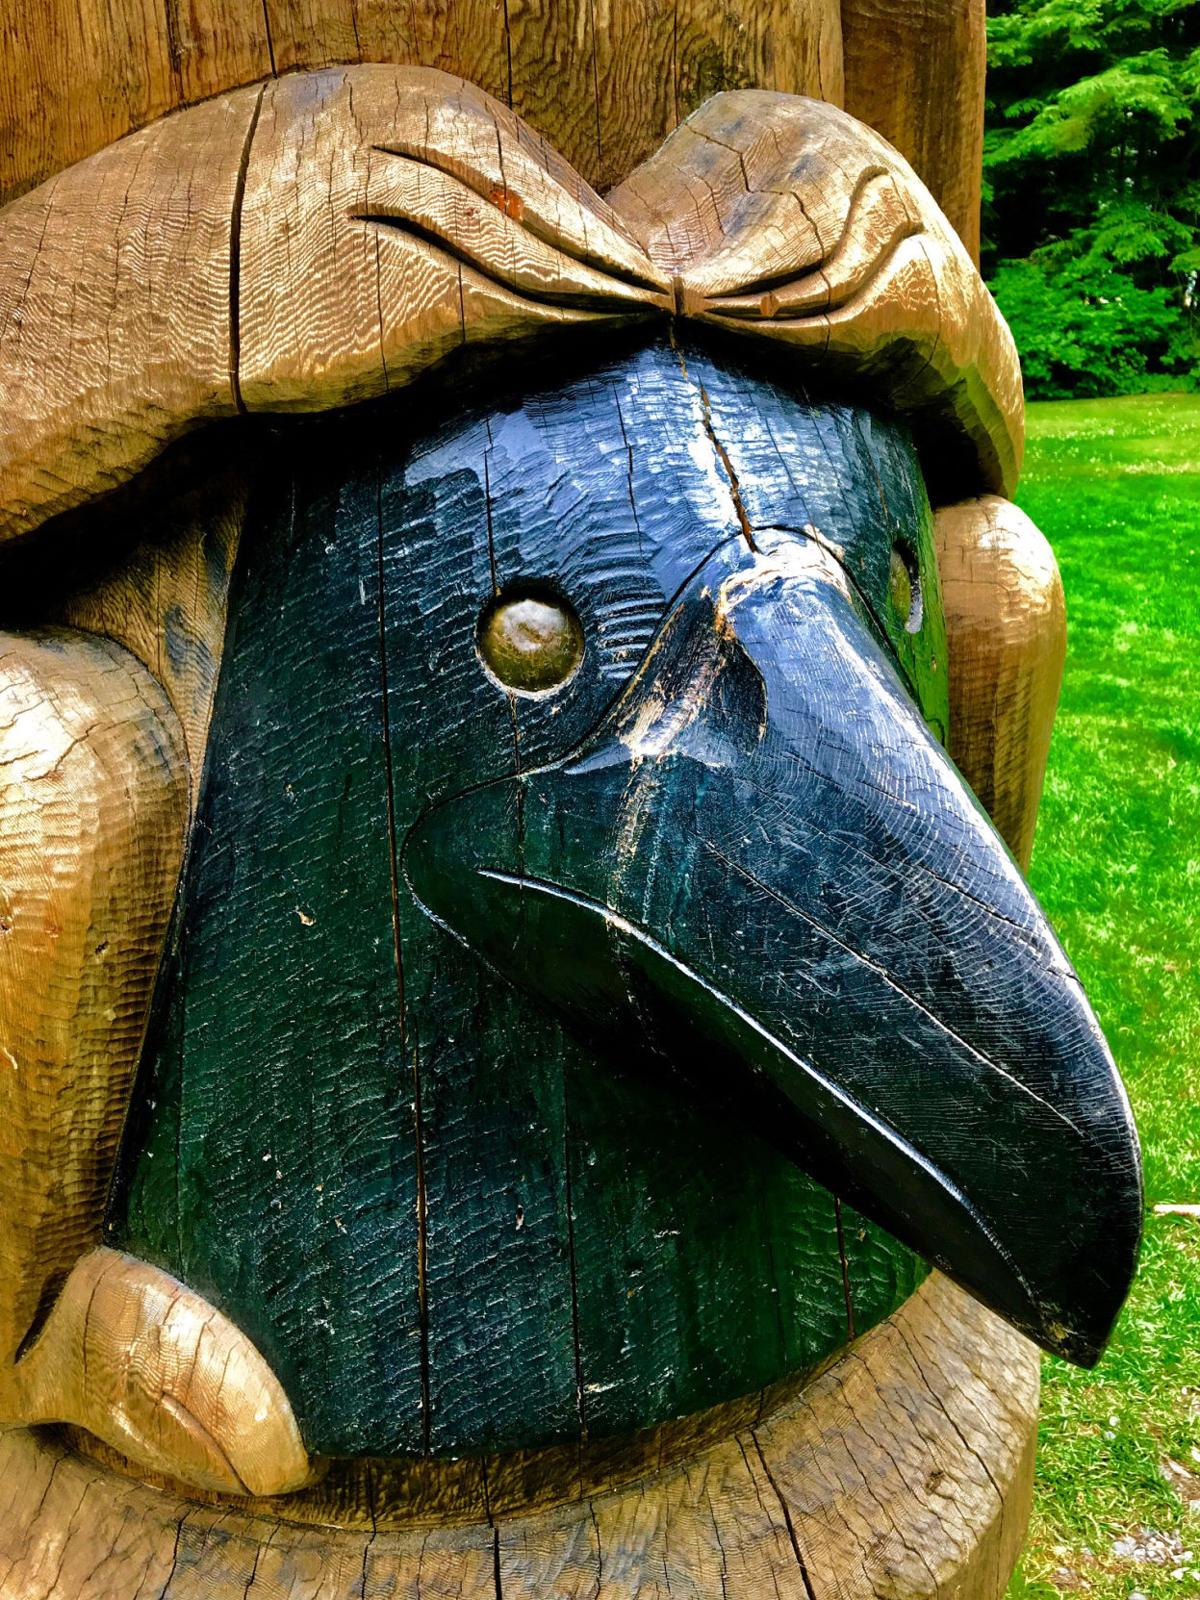 Raven carving